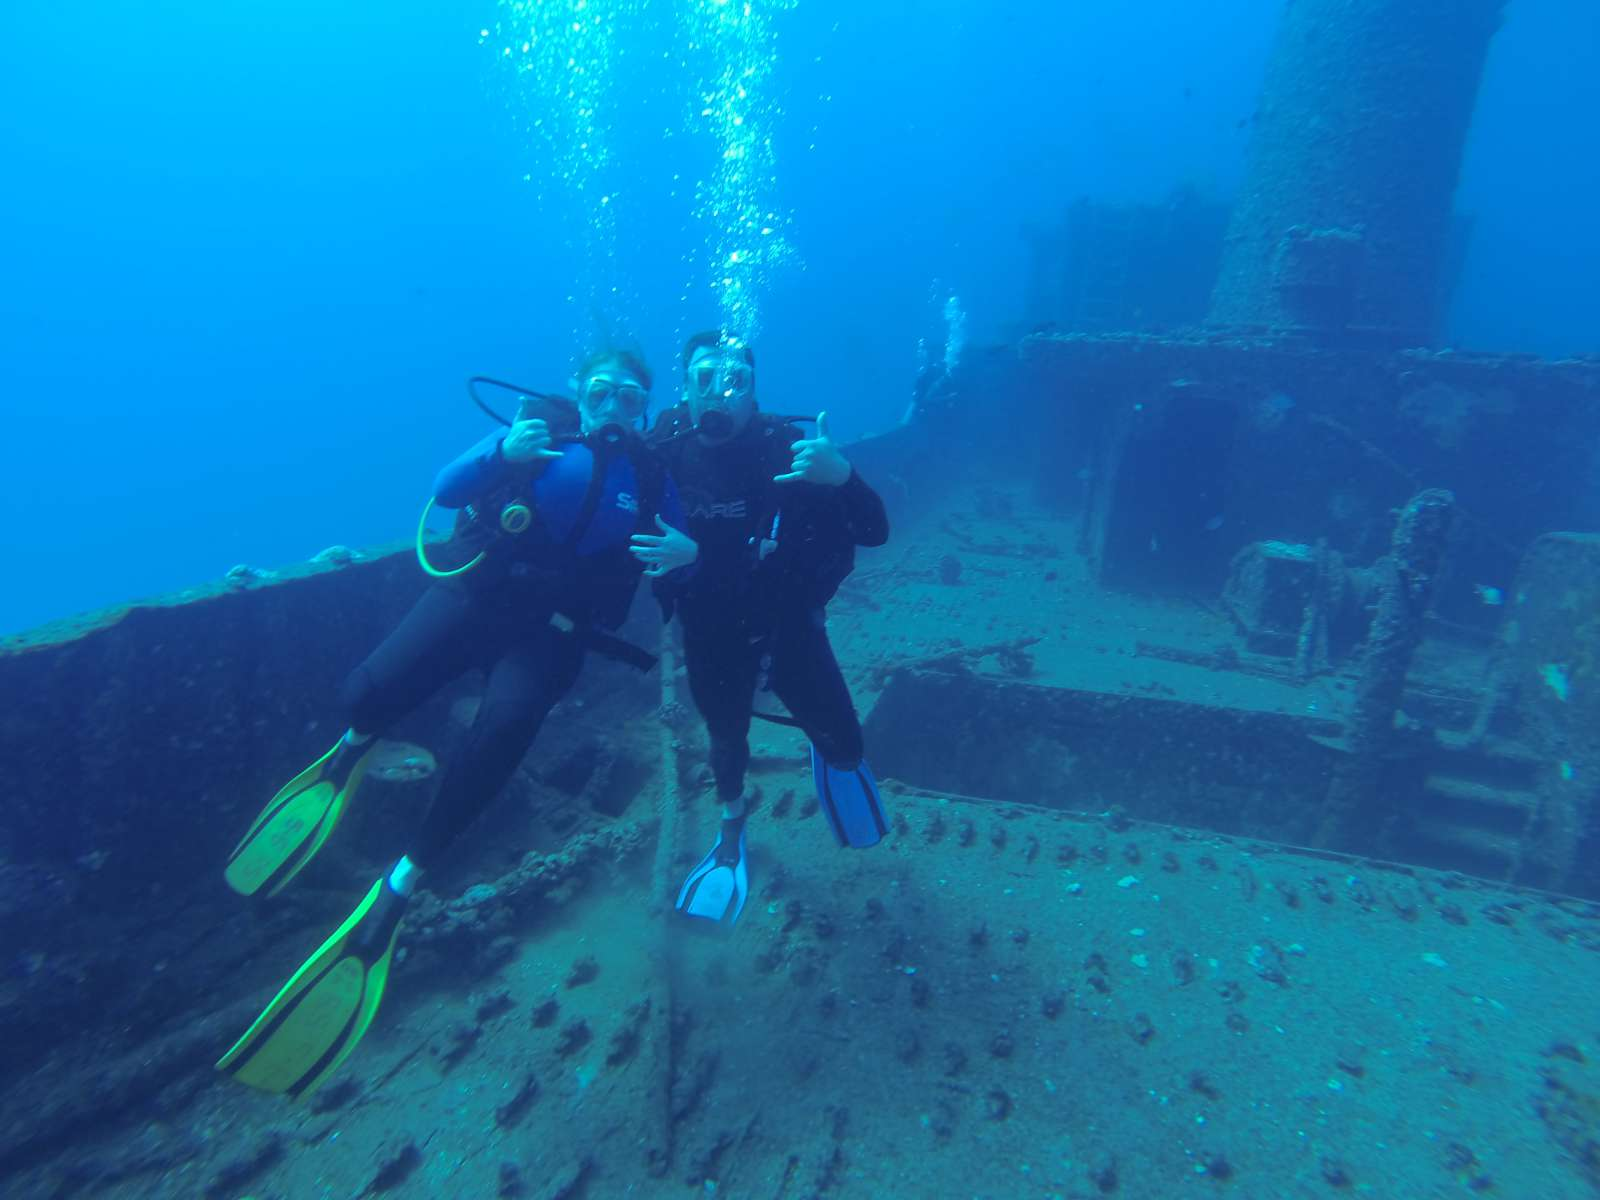 scuba diving in hawaii #2